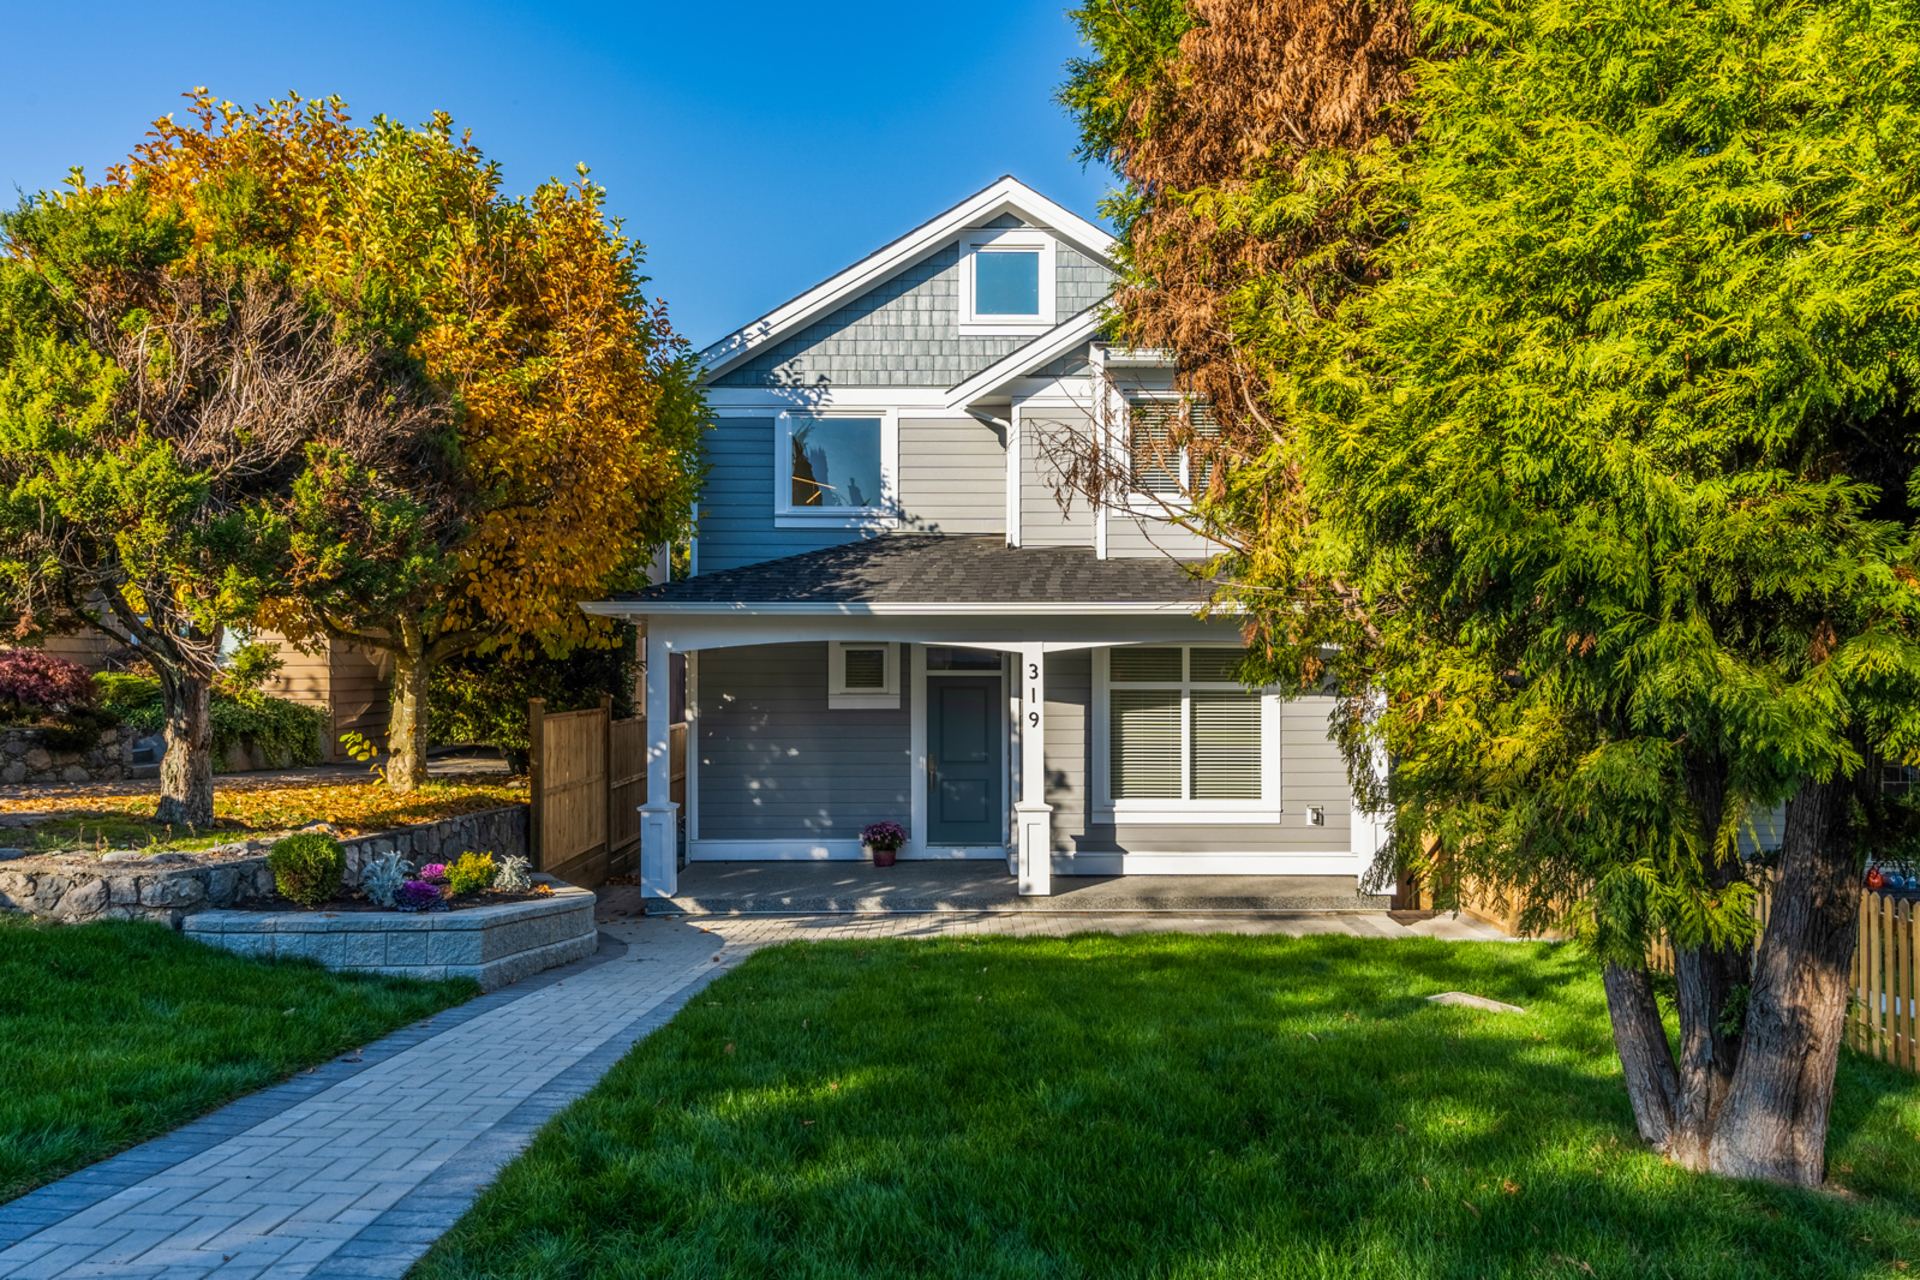 319 Nootka, The Heights NW, New Westminster